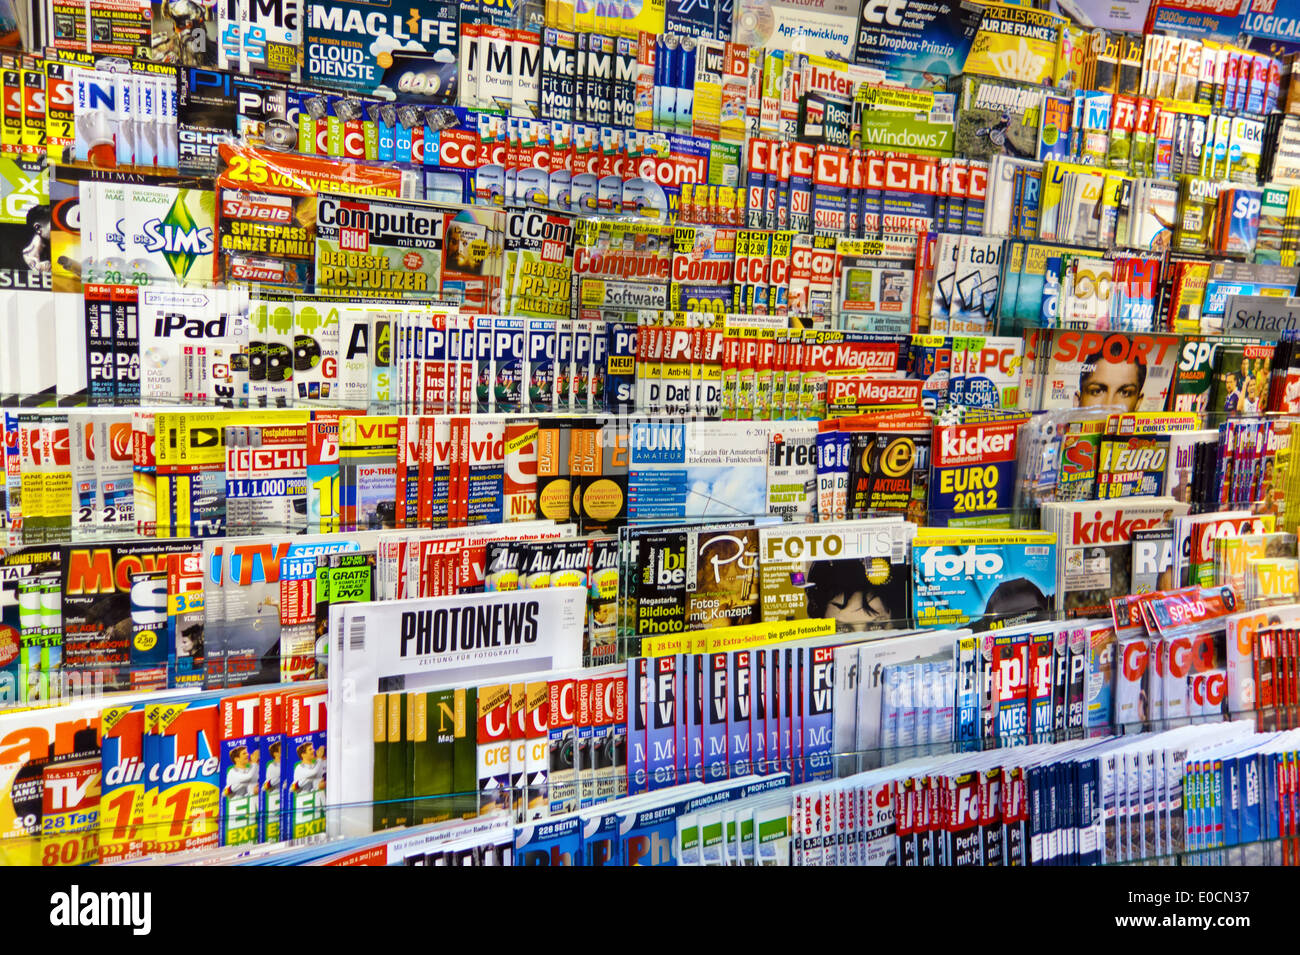 Many different magazines in a bookshop. Opinion variety and freedom of the press, Viele verschiedene Zeitschriften in einem Buch - Stock Image